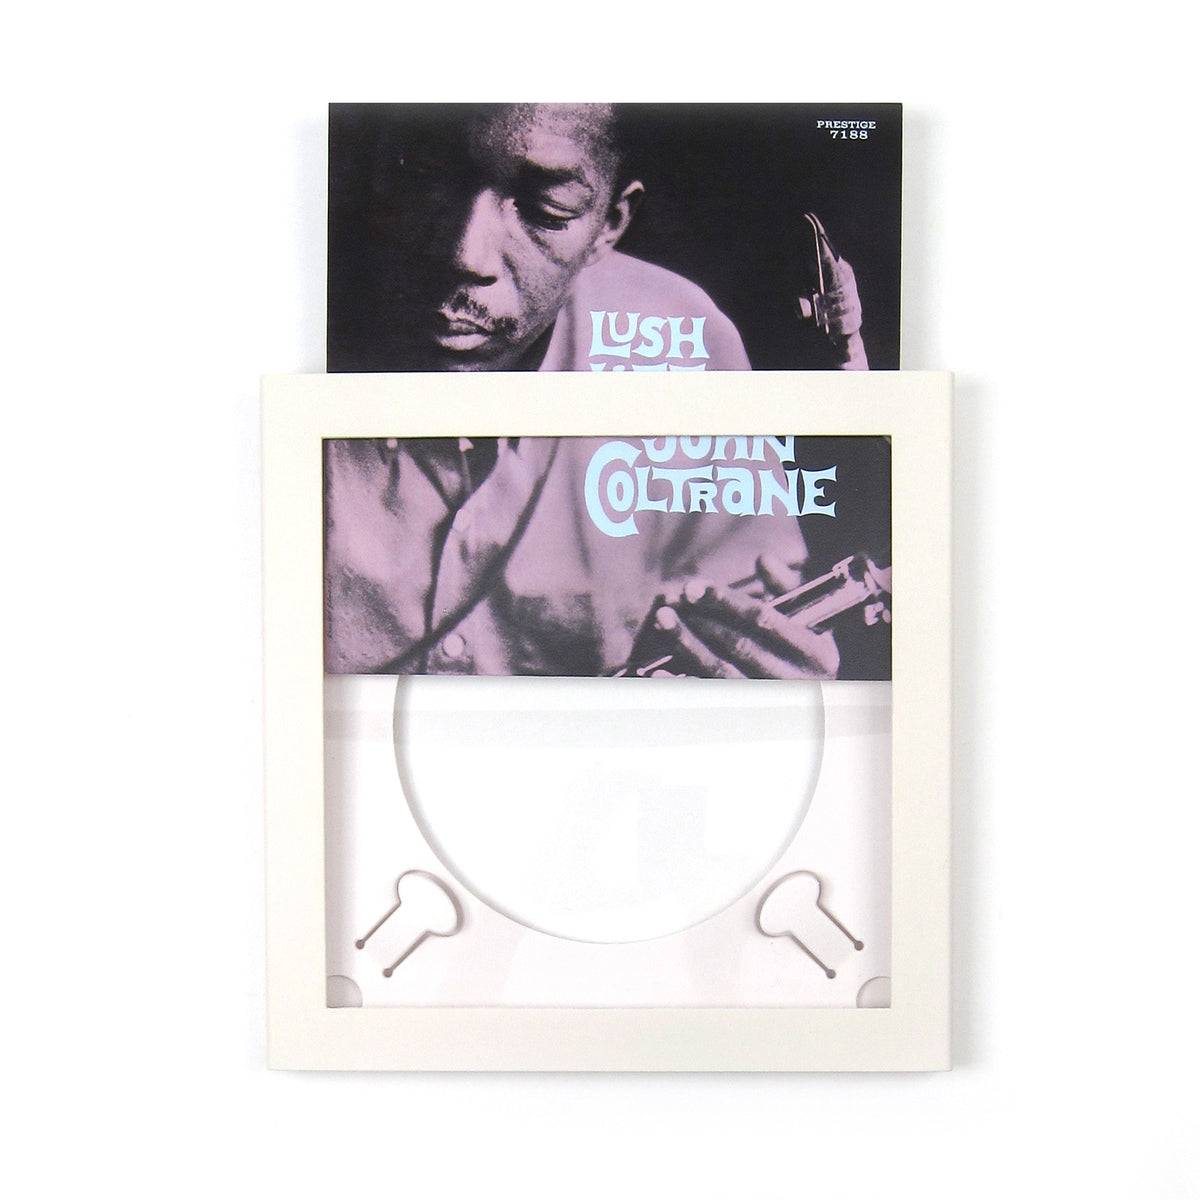 Art Vinyl: Play & Display Premium Vinyl Record Flip Frame - Triple Pack